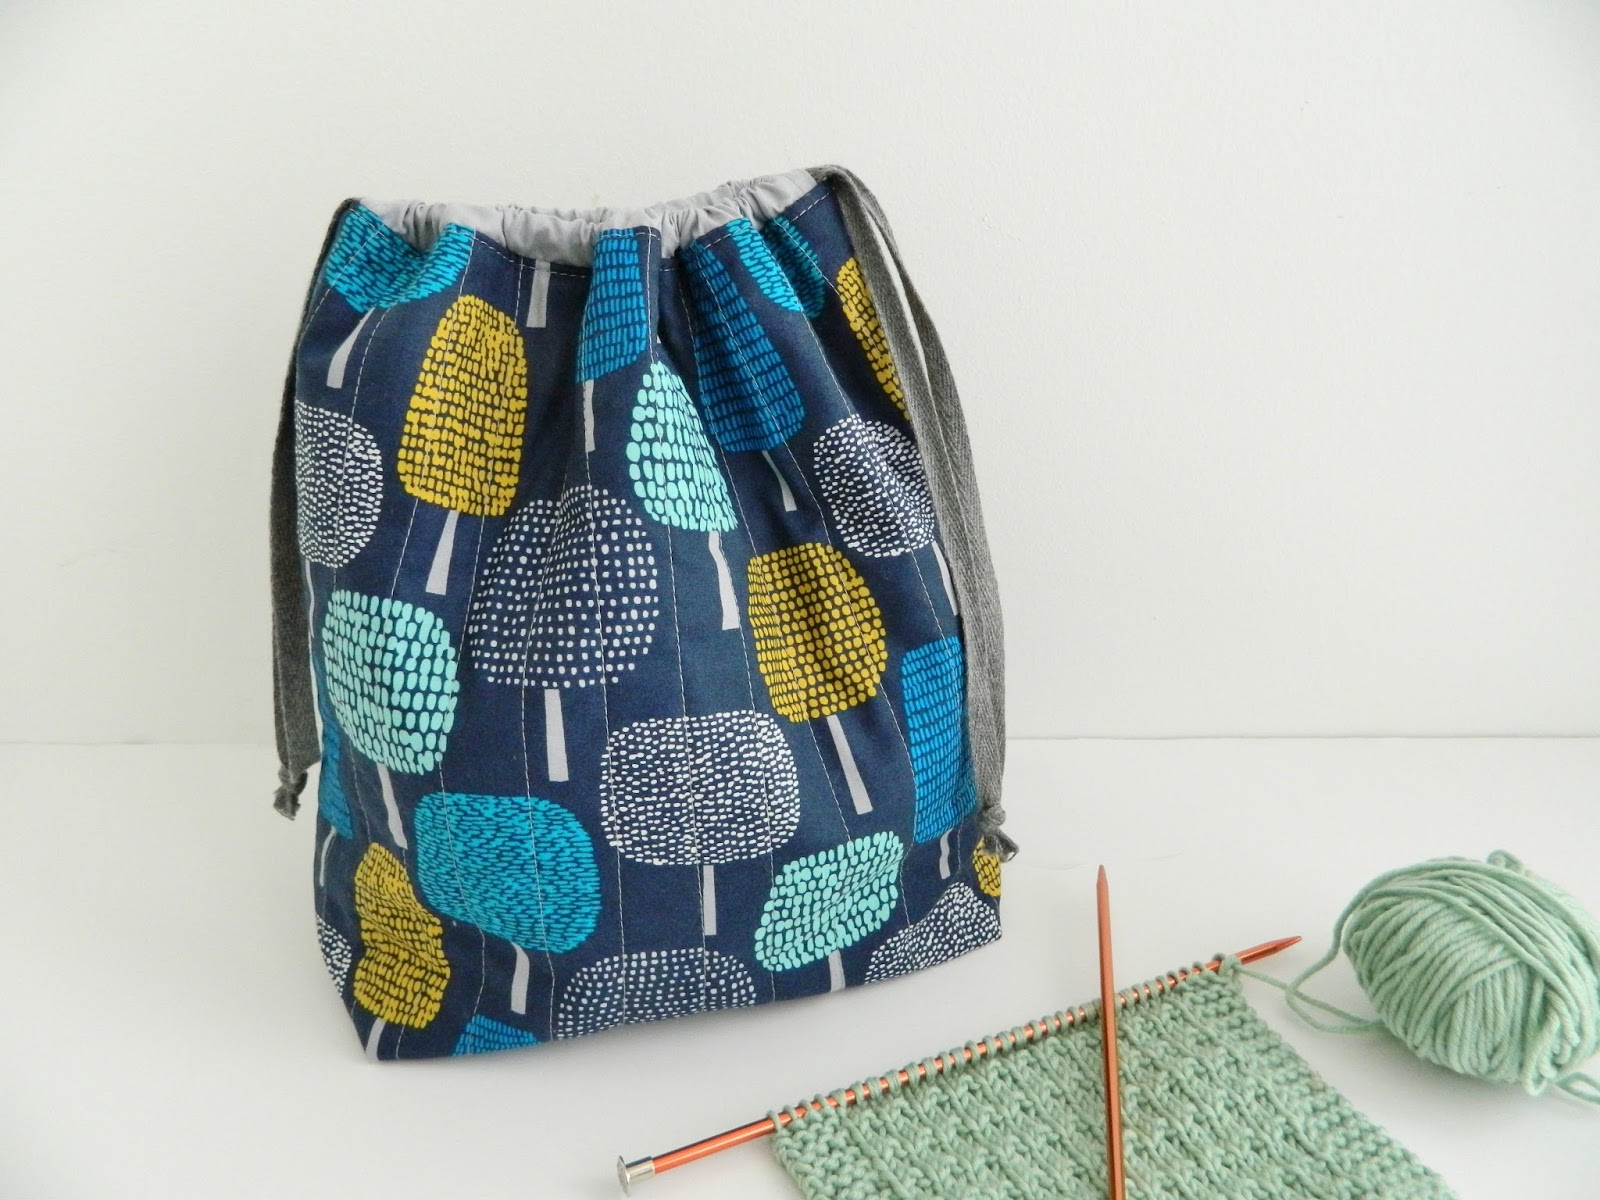 s.o.t.a.k handmade: drawstring bag in four sizes {new pdf pattern}